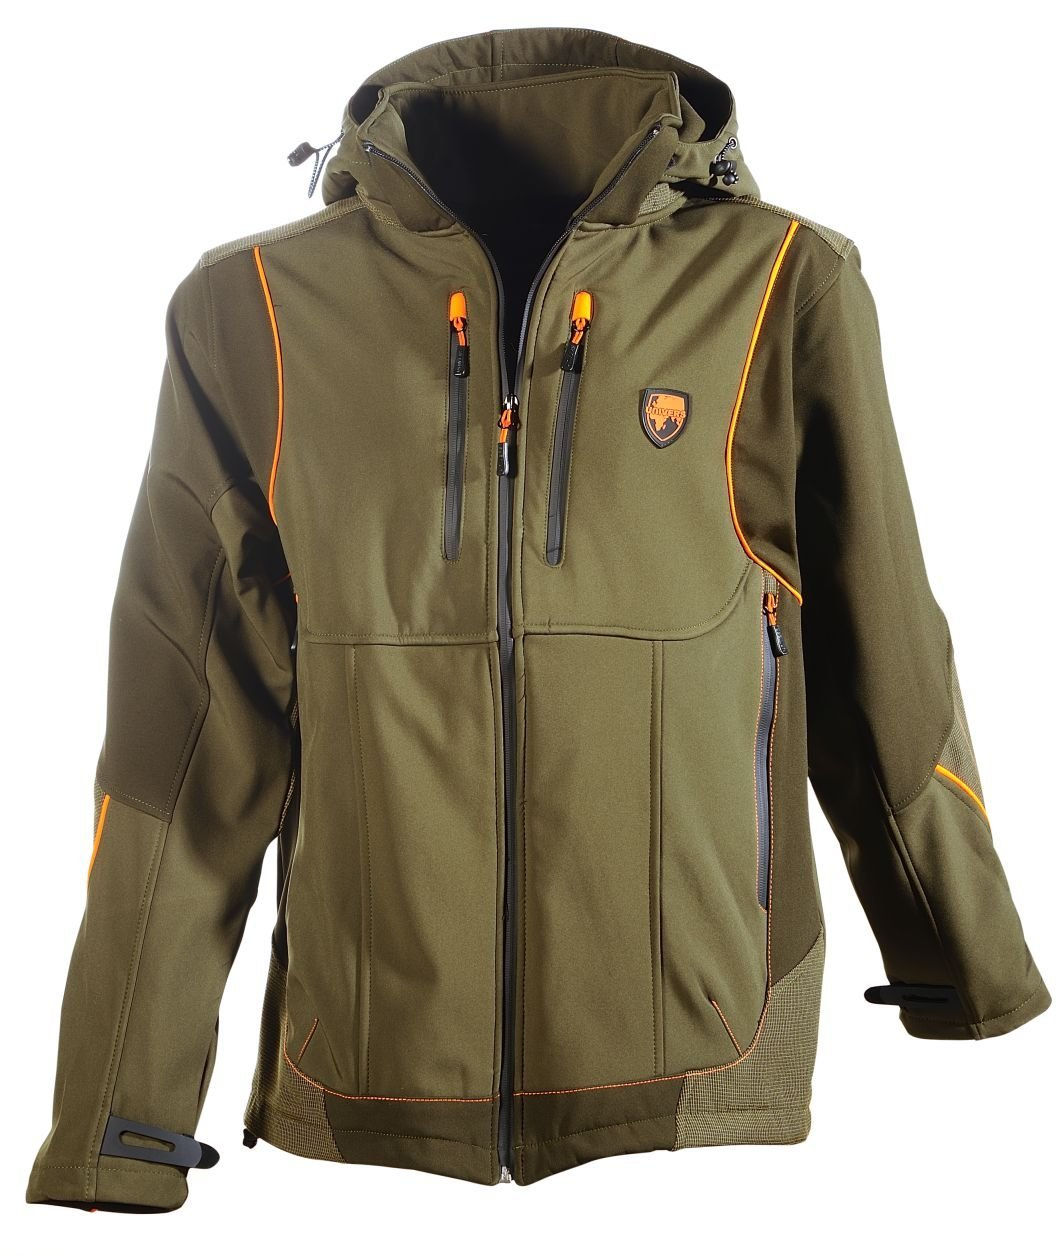 Univers Tex Softshell Jacket 91098 / 326